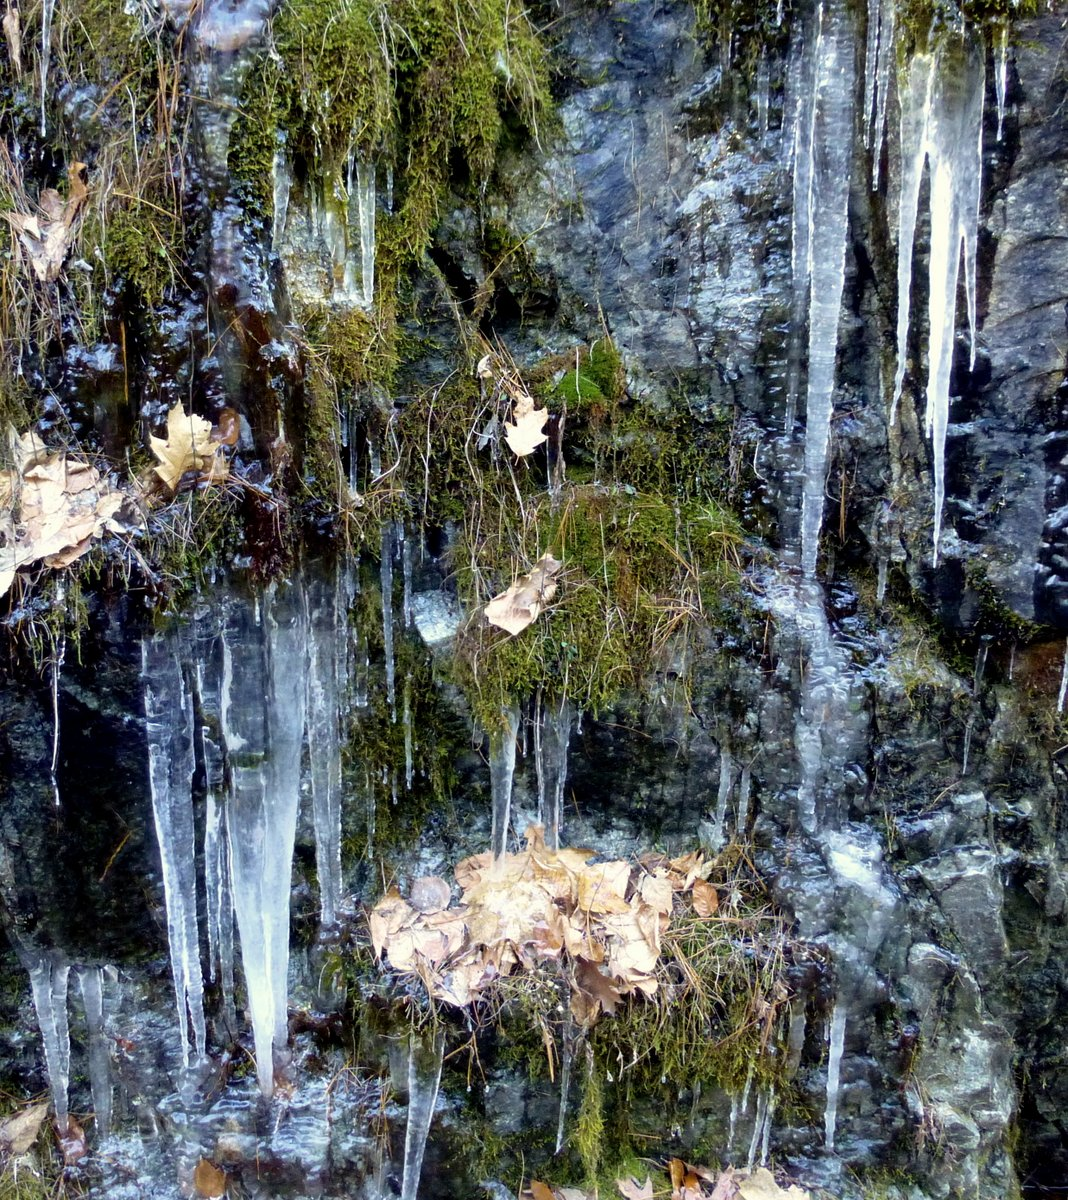 14. Ice Covered Moss